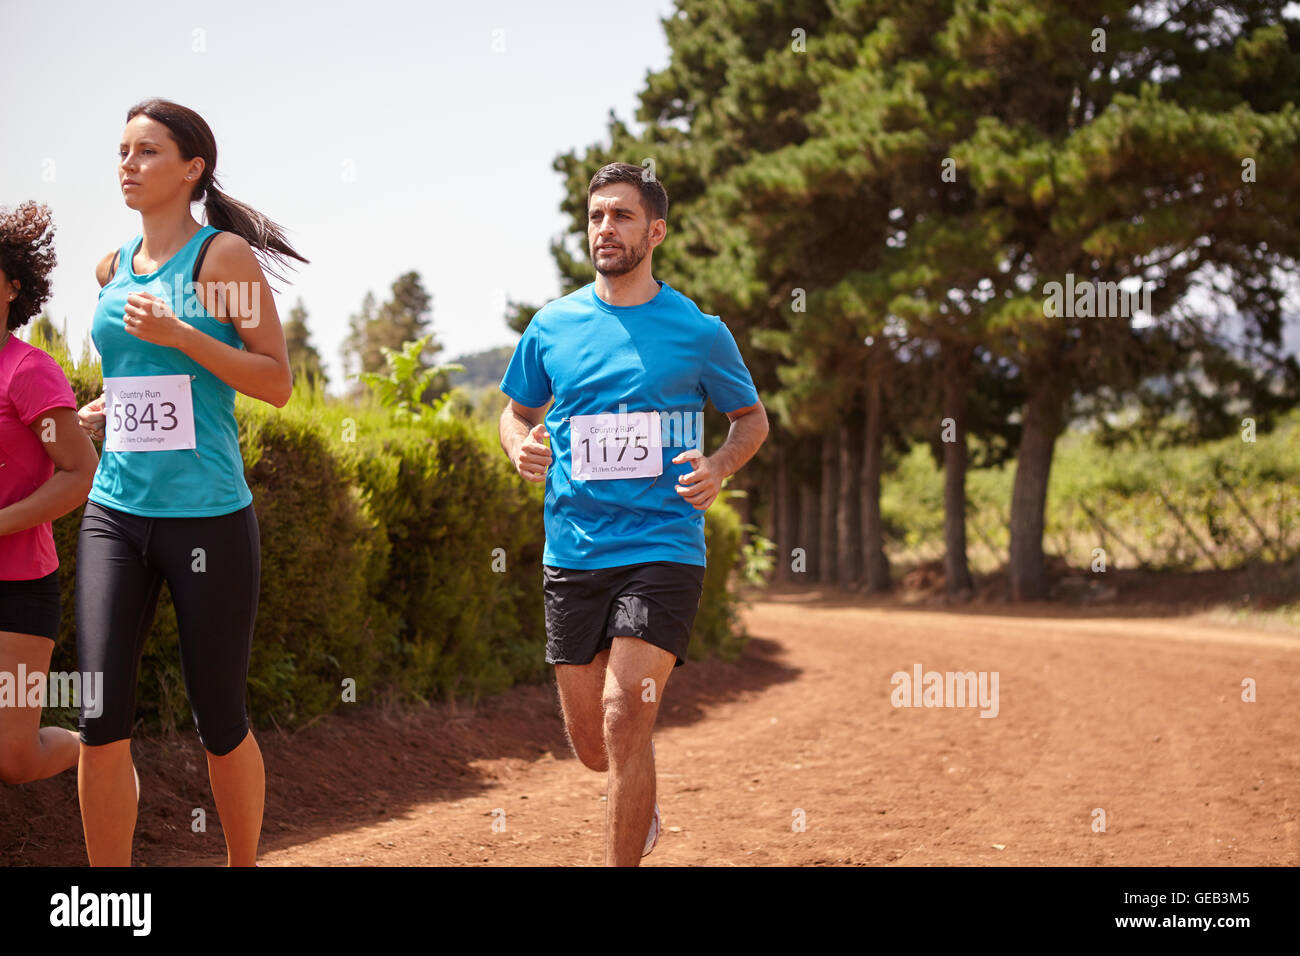 Three marathon runners in a race on a gravel path with trees behind them wearing casual running clothes in the late - Stock Image